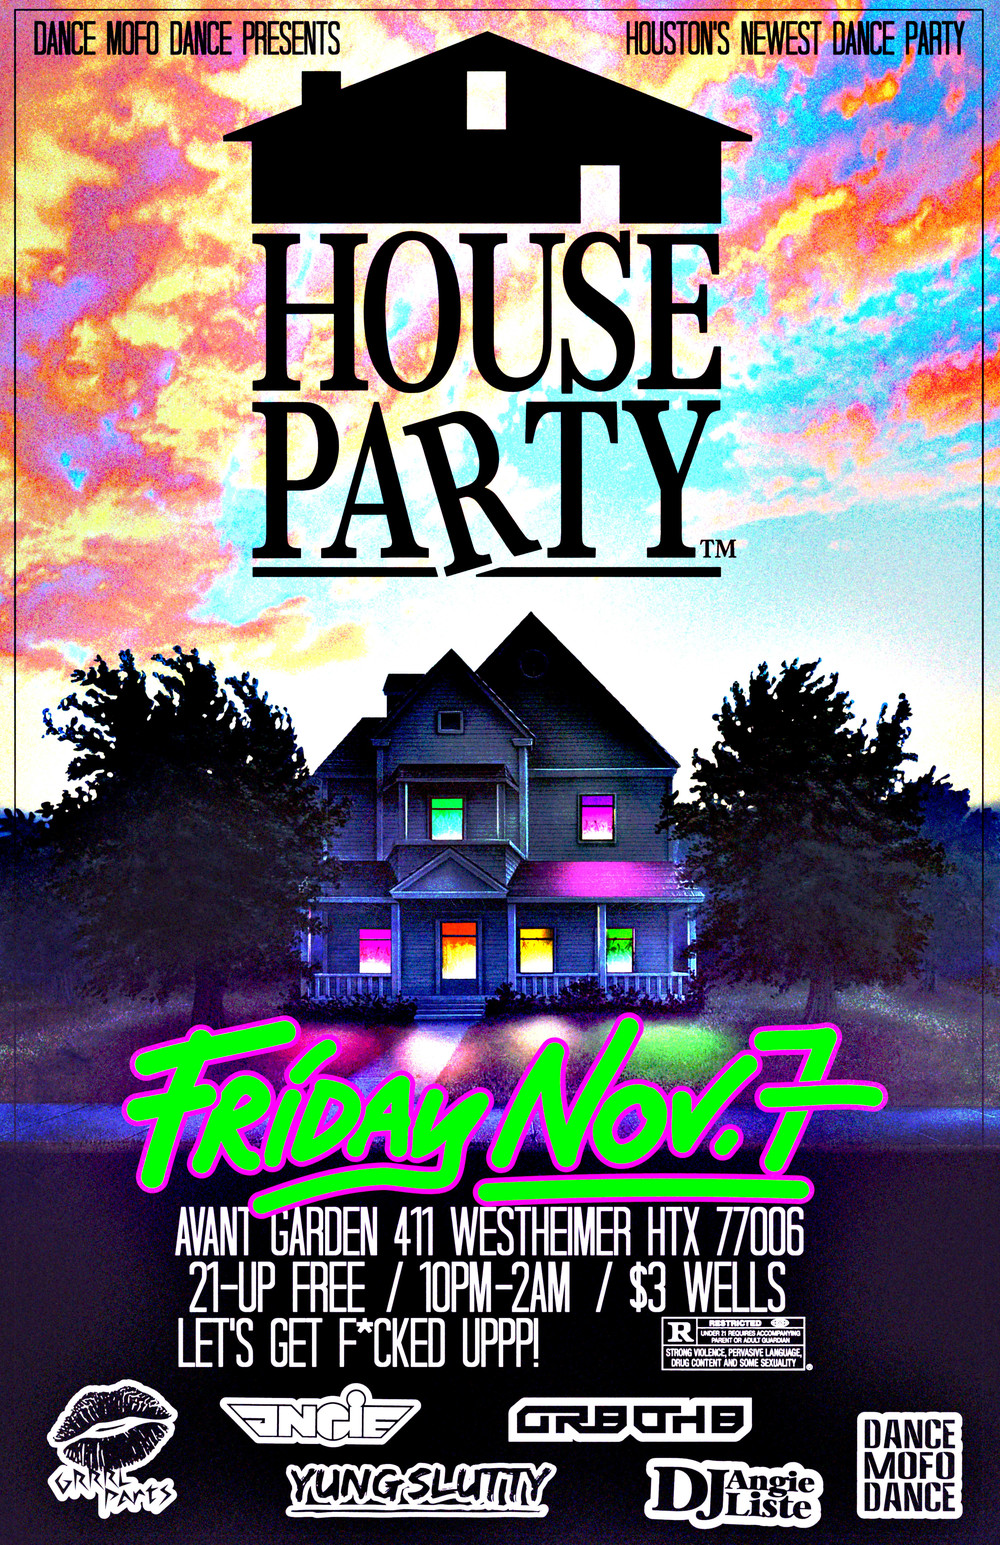 House_Party_NOV7_11x17.jpg